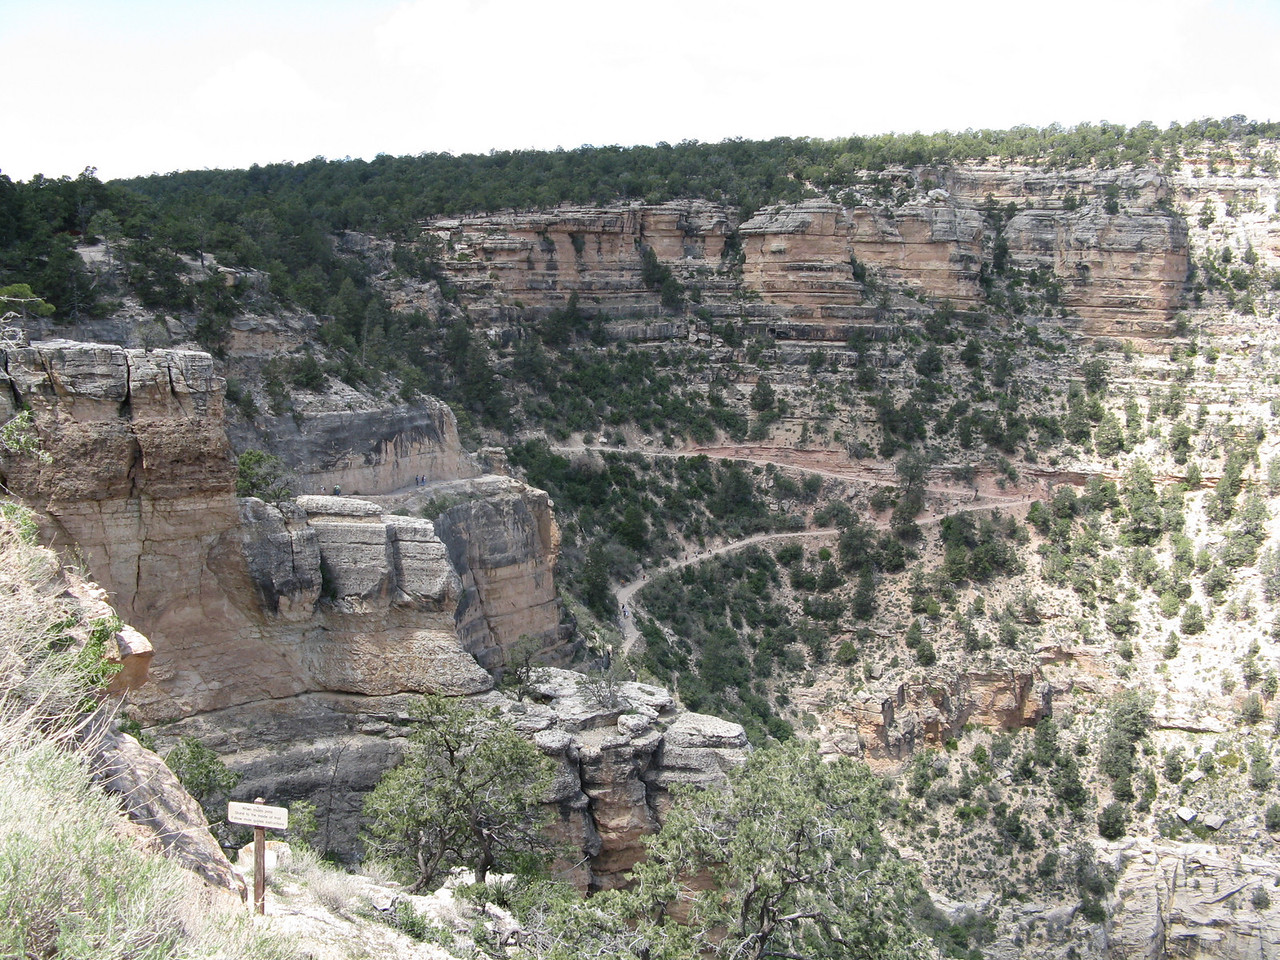 The last long switchback in Bright Angel Trail before it reaches to top of the rim.  The trail comes back to the left side of the picture.